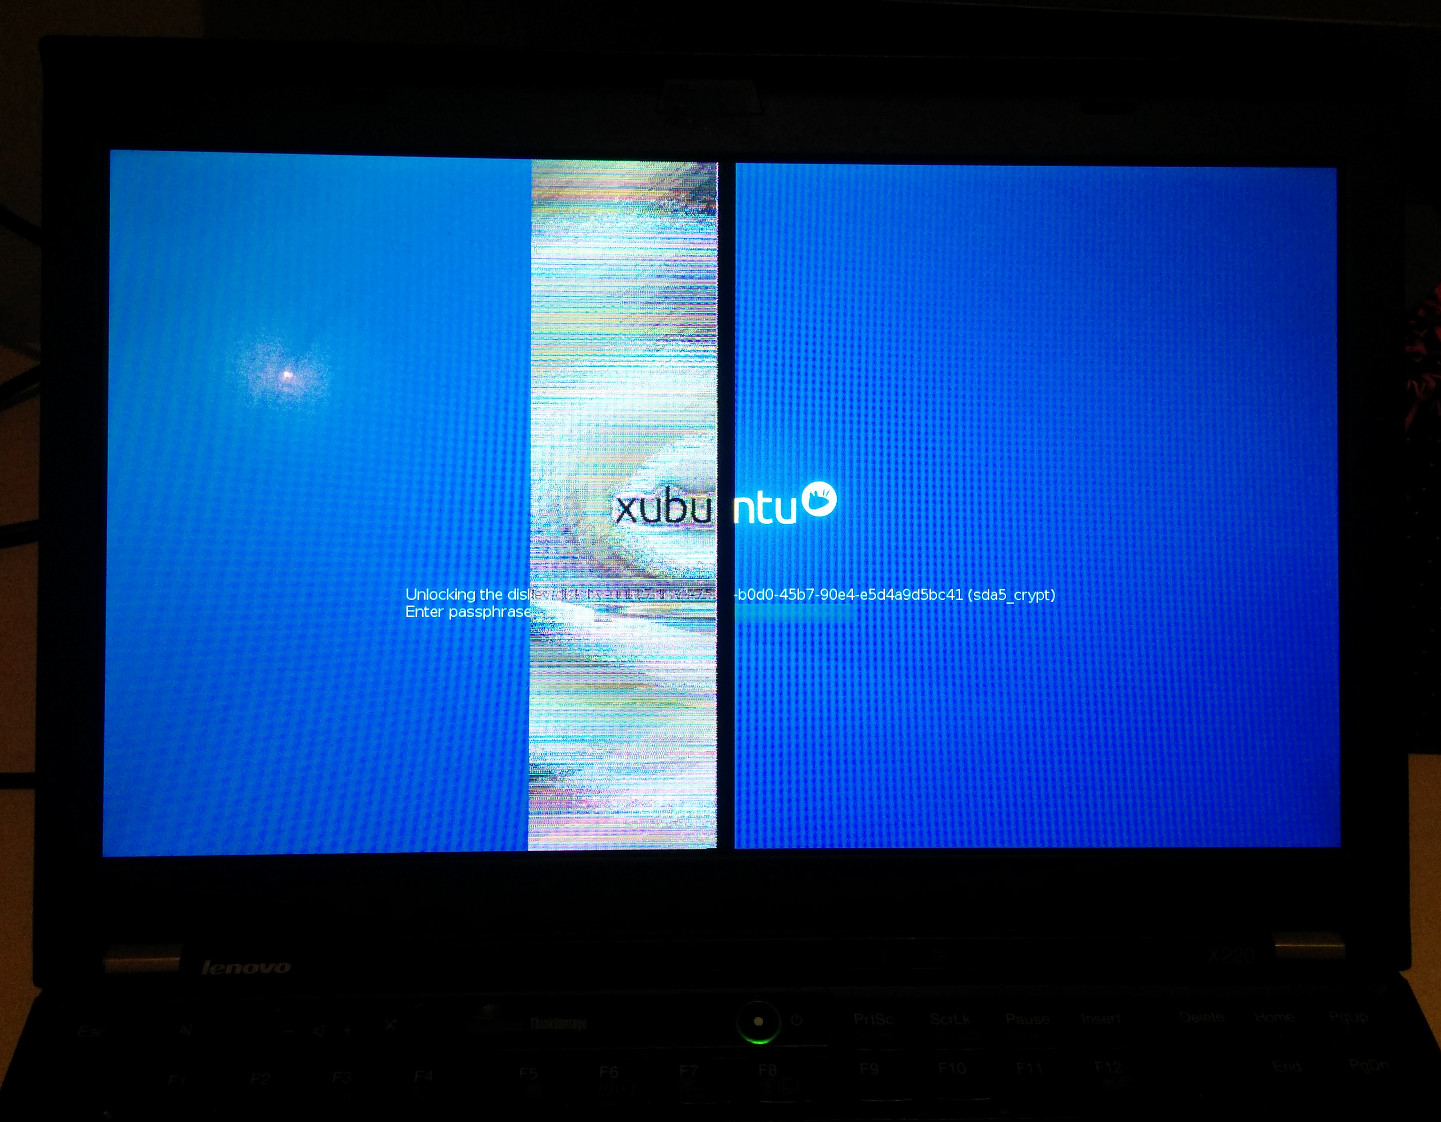 X220 screen problem - causes, fixes? (details inside